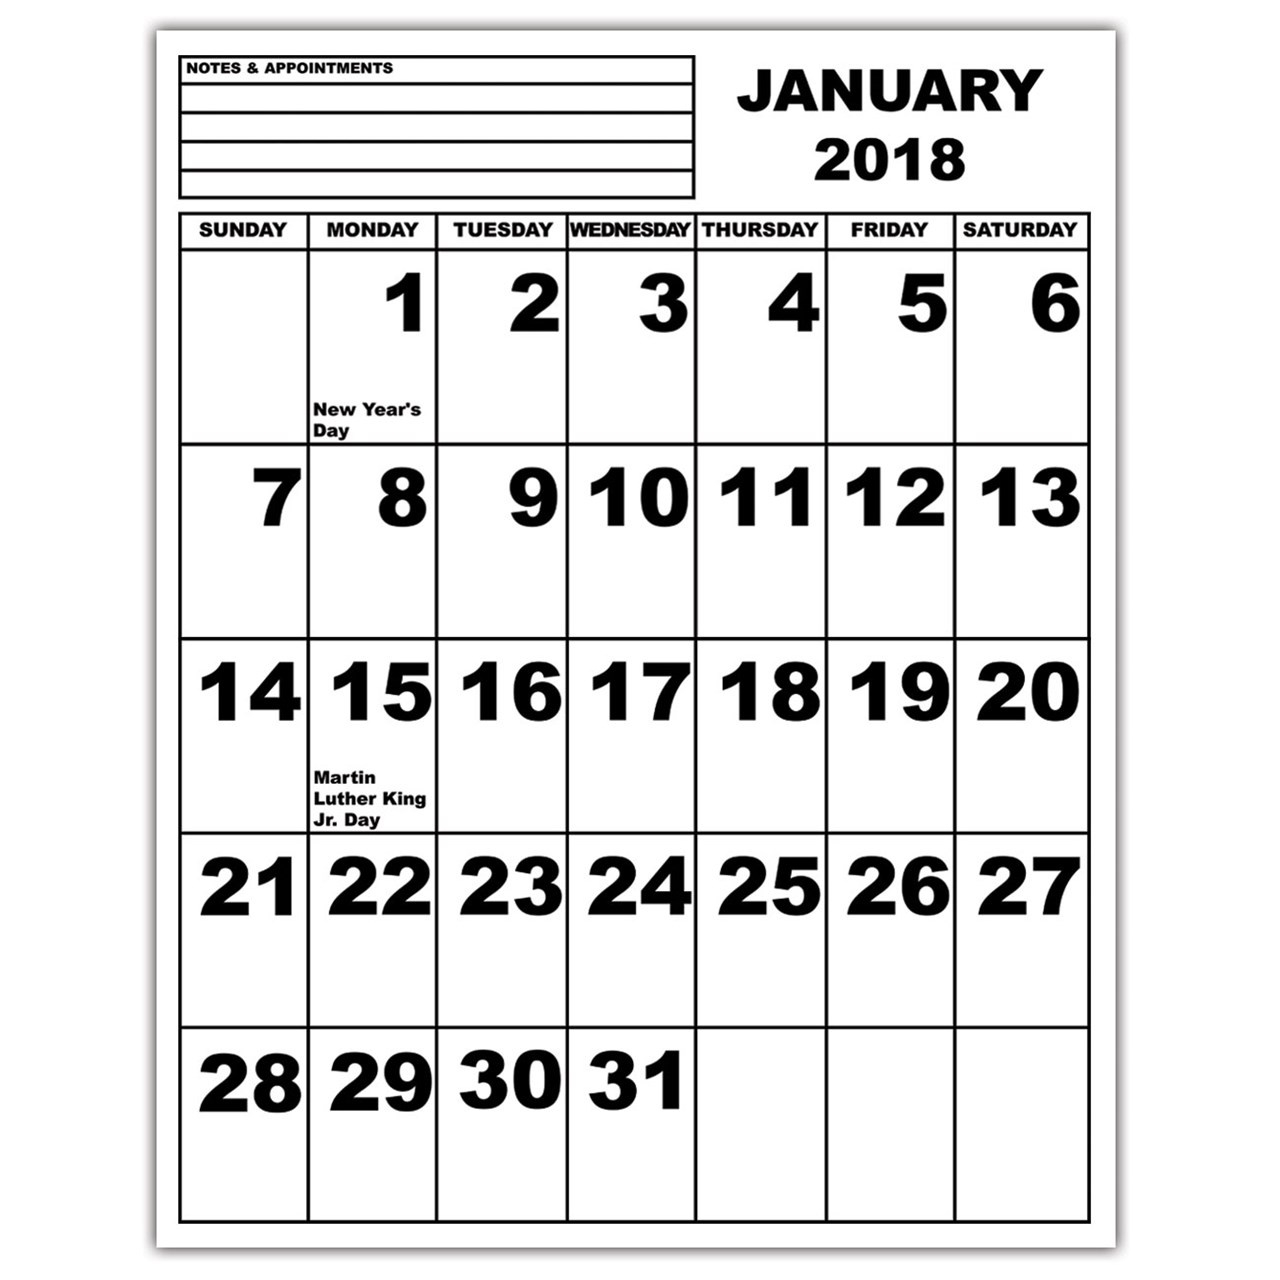 Free Calendar Templates For The Blind | Calendar Template Printable  Free Calendar Templates For The Blind